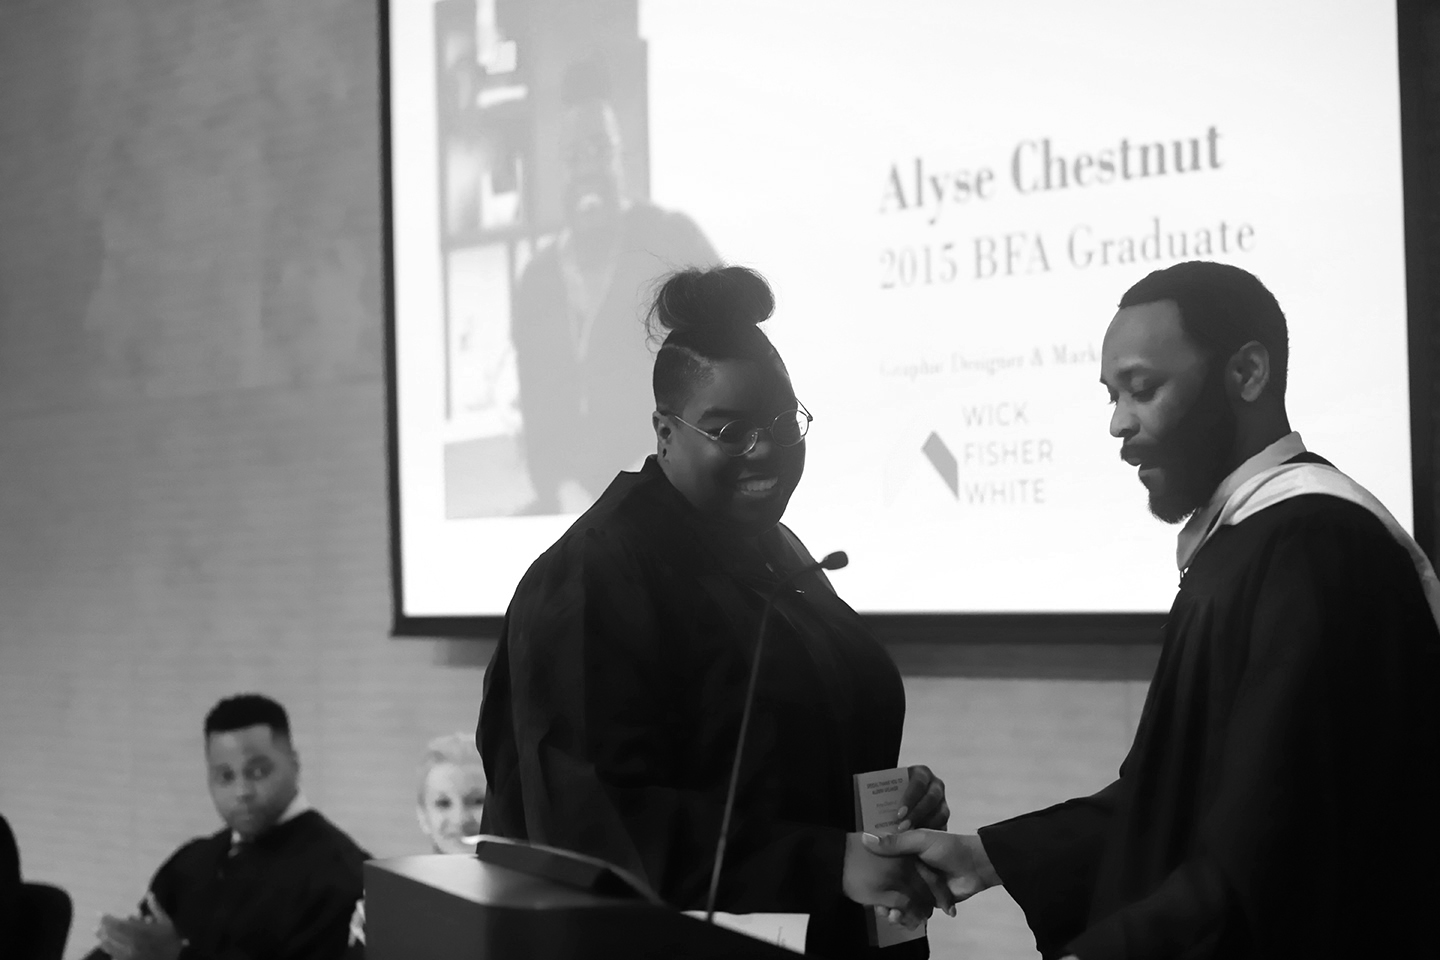 January 2019 Alyse's Alma Mater reached out as they were beginning to plan their graduation ceremony and extended an invitation for her to address the 2019 class as a Hussian College, School of Art alumni. The graduation ceremony was held at The Barnes Foundation on May 14, 2019. Alyse was the first to speak to the class at the ceremony and she was able to give some encouraging words to her fellow graphic designers and soon-to-be creative professionals.